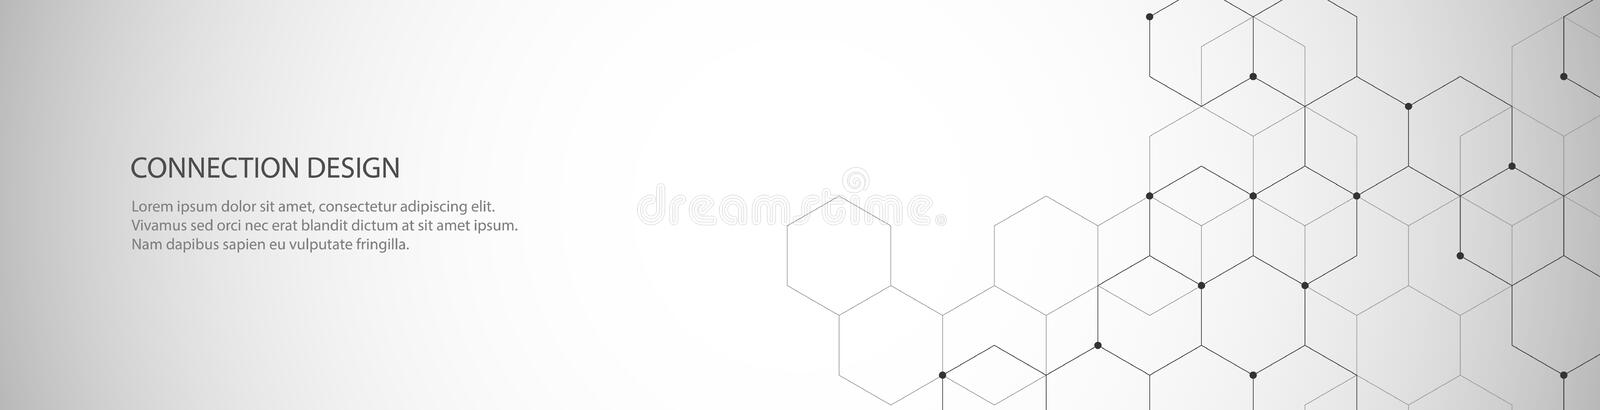 Vector banner design, global connection with lines and dots. Digital geometric abstract background. vector illustration